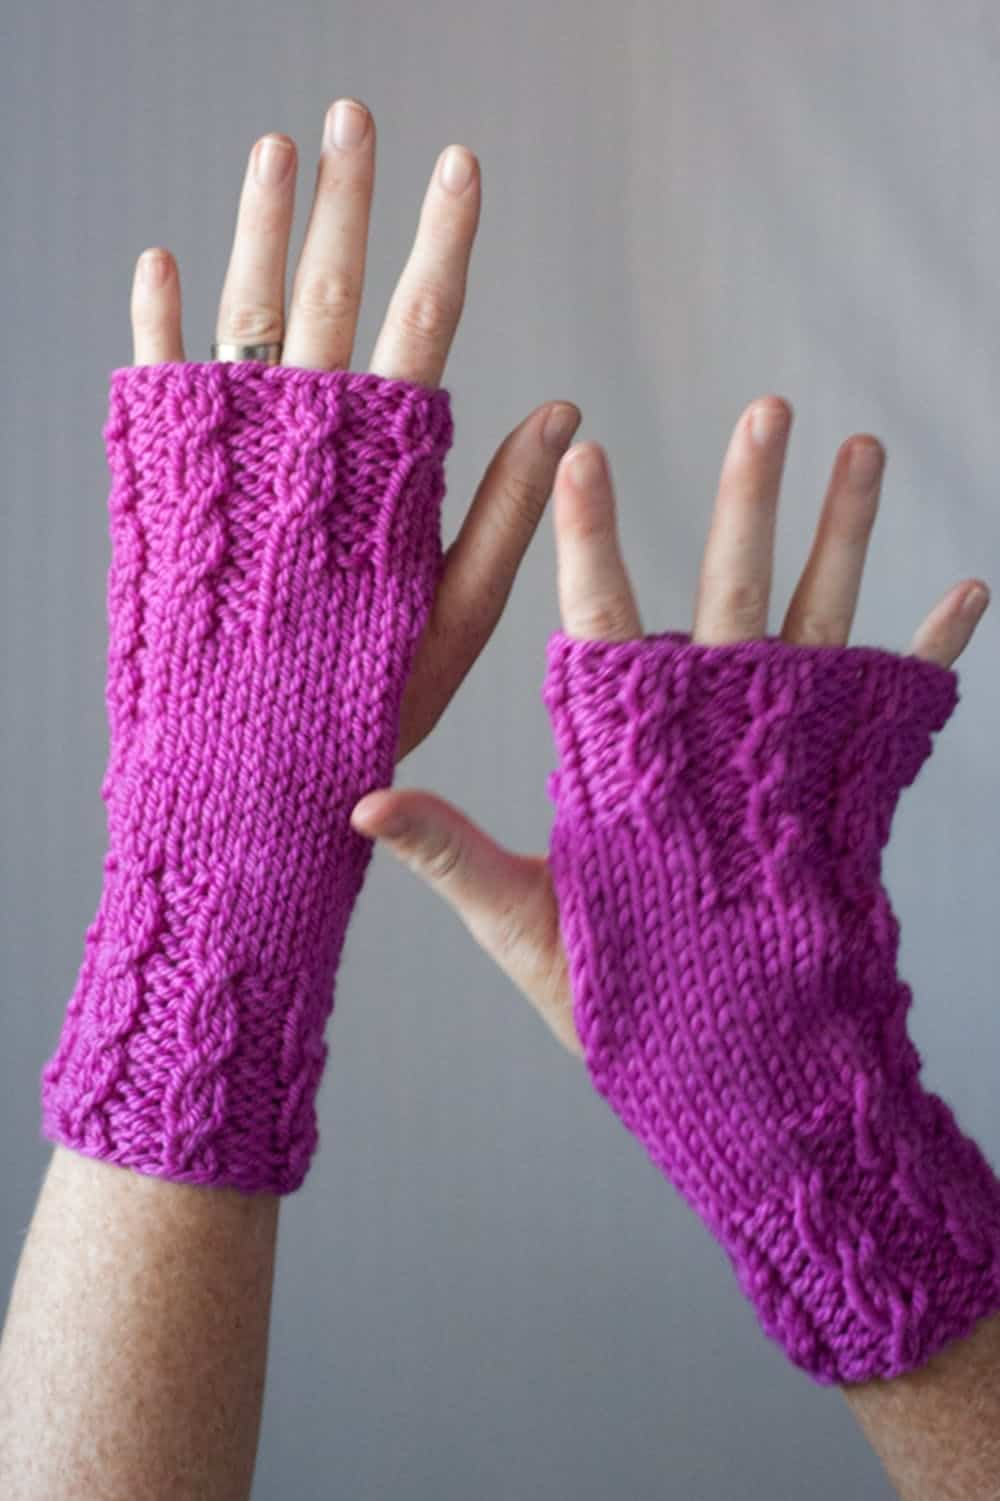 Wrist warmer knitting pattern